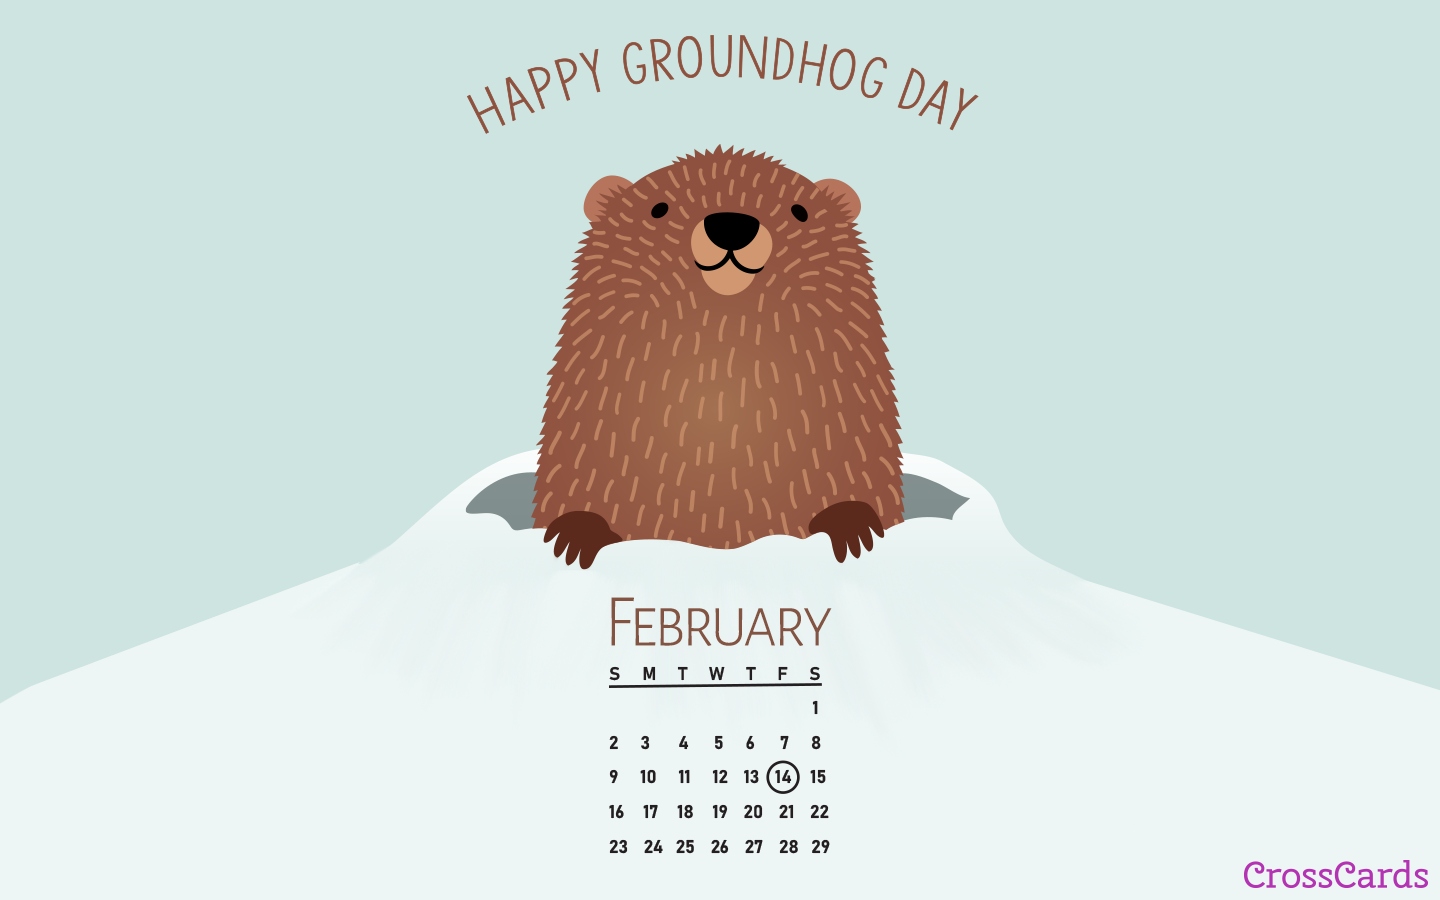 February 2020 - Groundhog Day mobile phone wallpaper